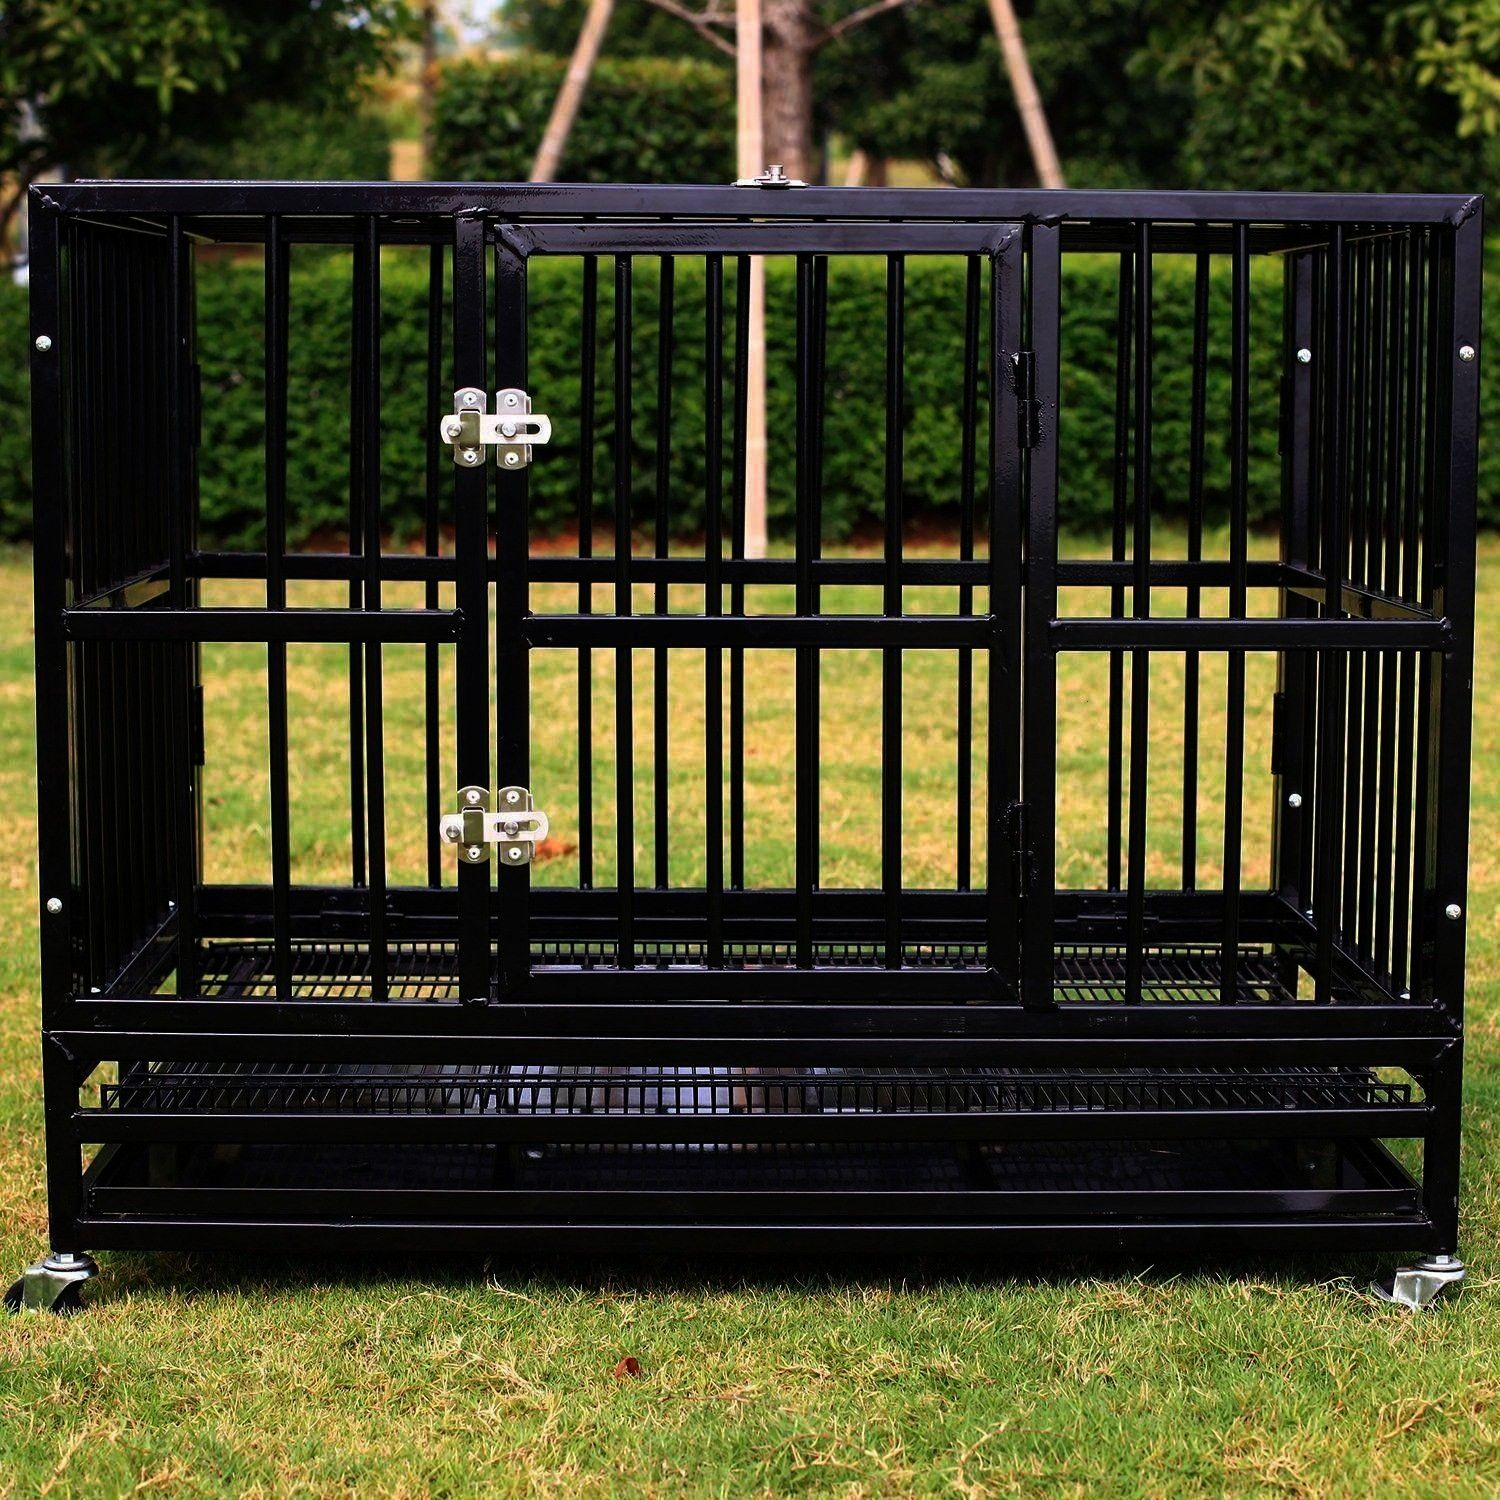 Charge Walcut New Heavy Duty Strong Metal Pet Dog Cage Crate C   Excellent Free of Charge Walcut New Heavy Duty Strong Metal Pet Dog Cage Crate C  Excellent Free of Charg...